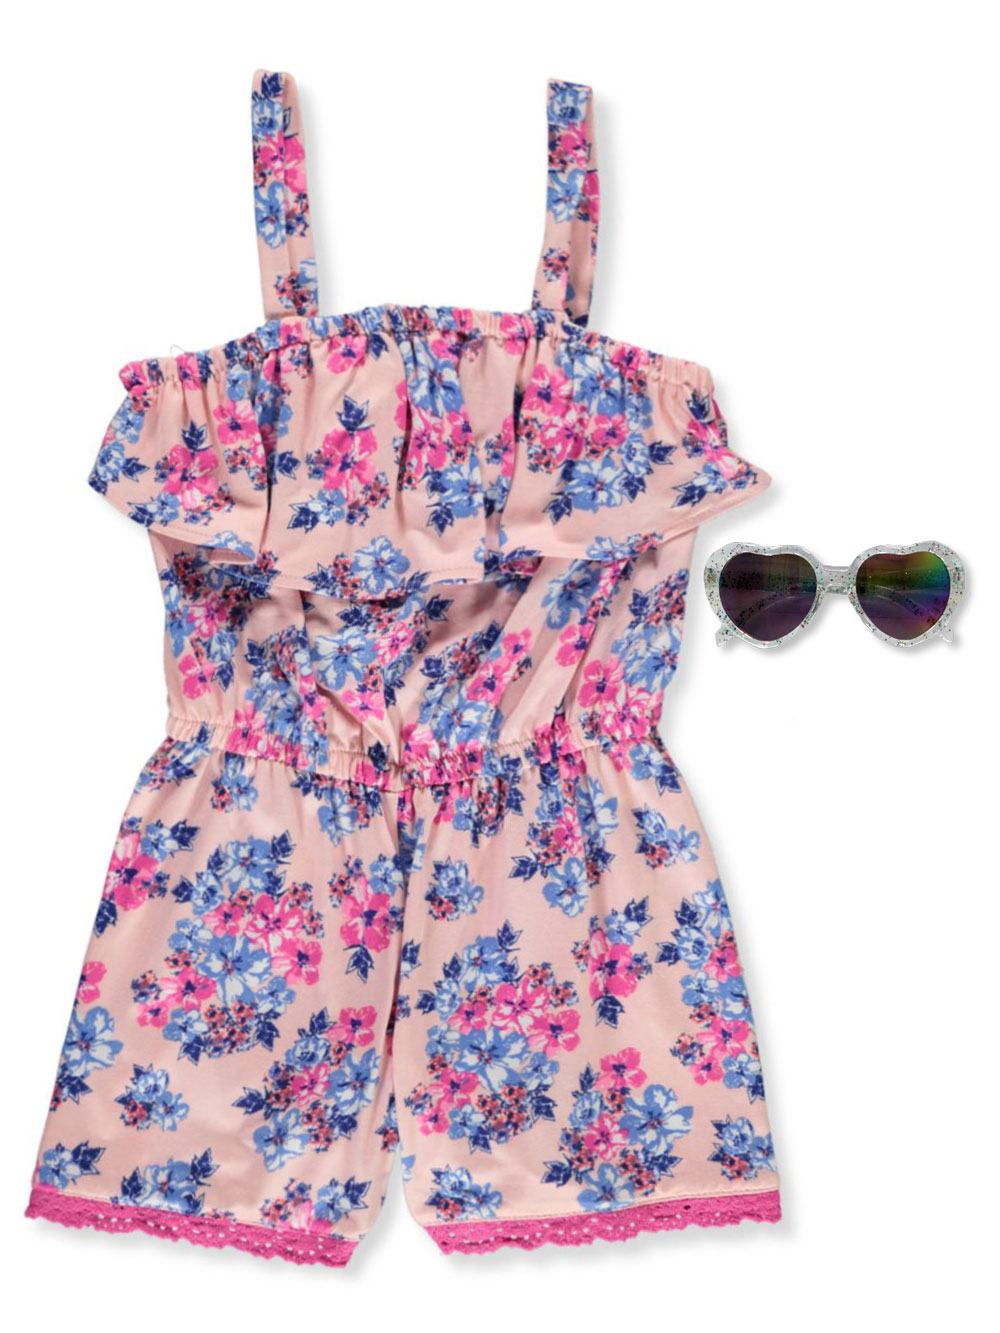 Size 8-10 Rompers Jumpsuits for Girls